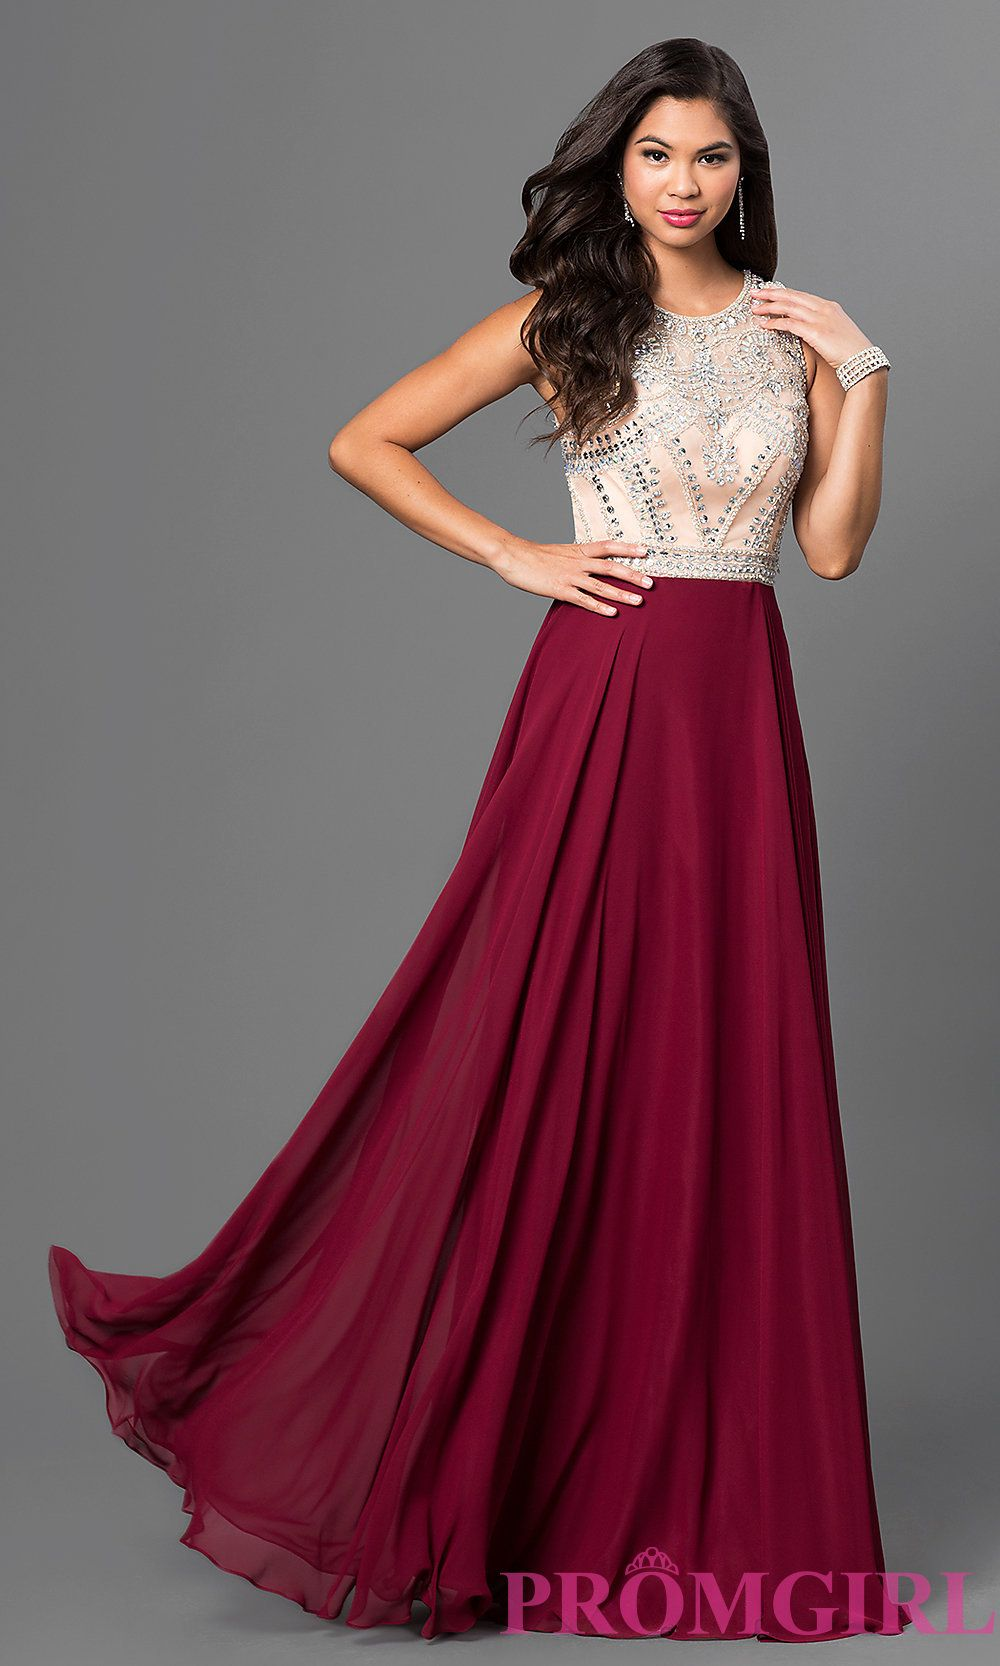 Long Burgundy Red Prom Dress with Beaded Bodice FANCY